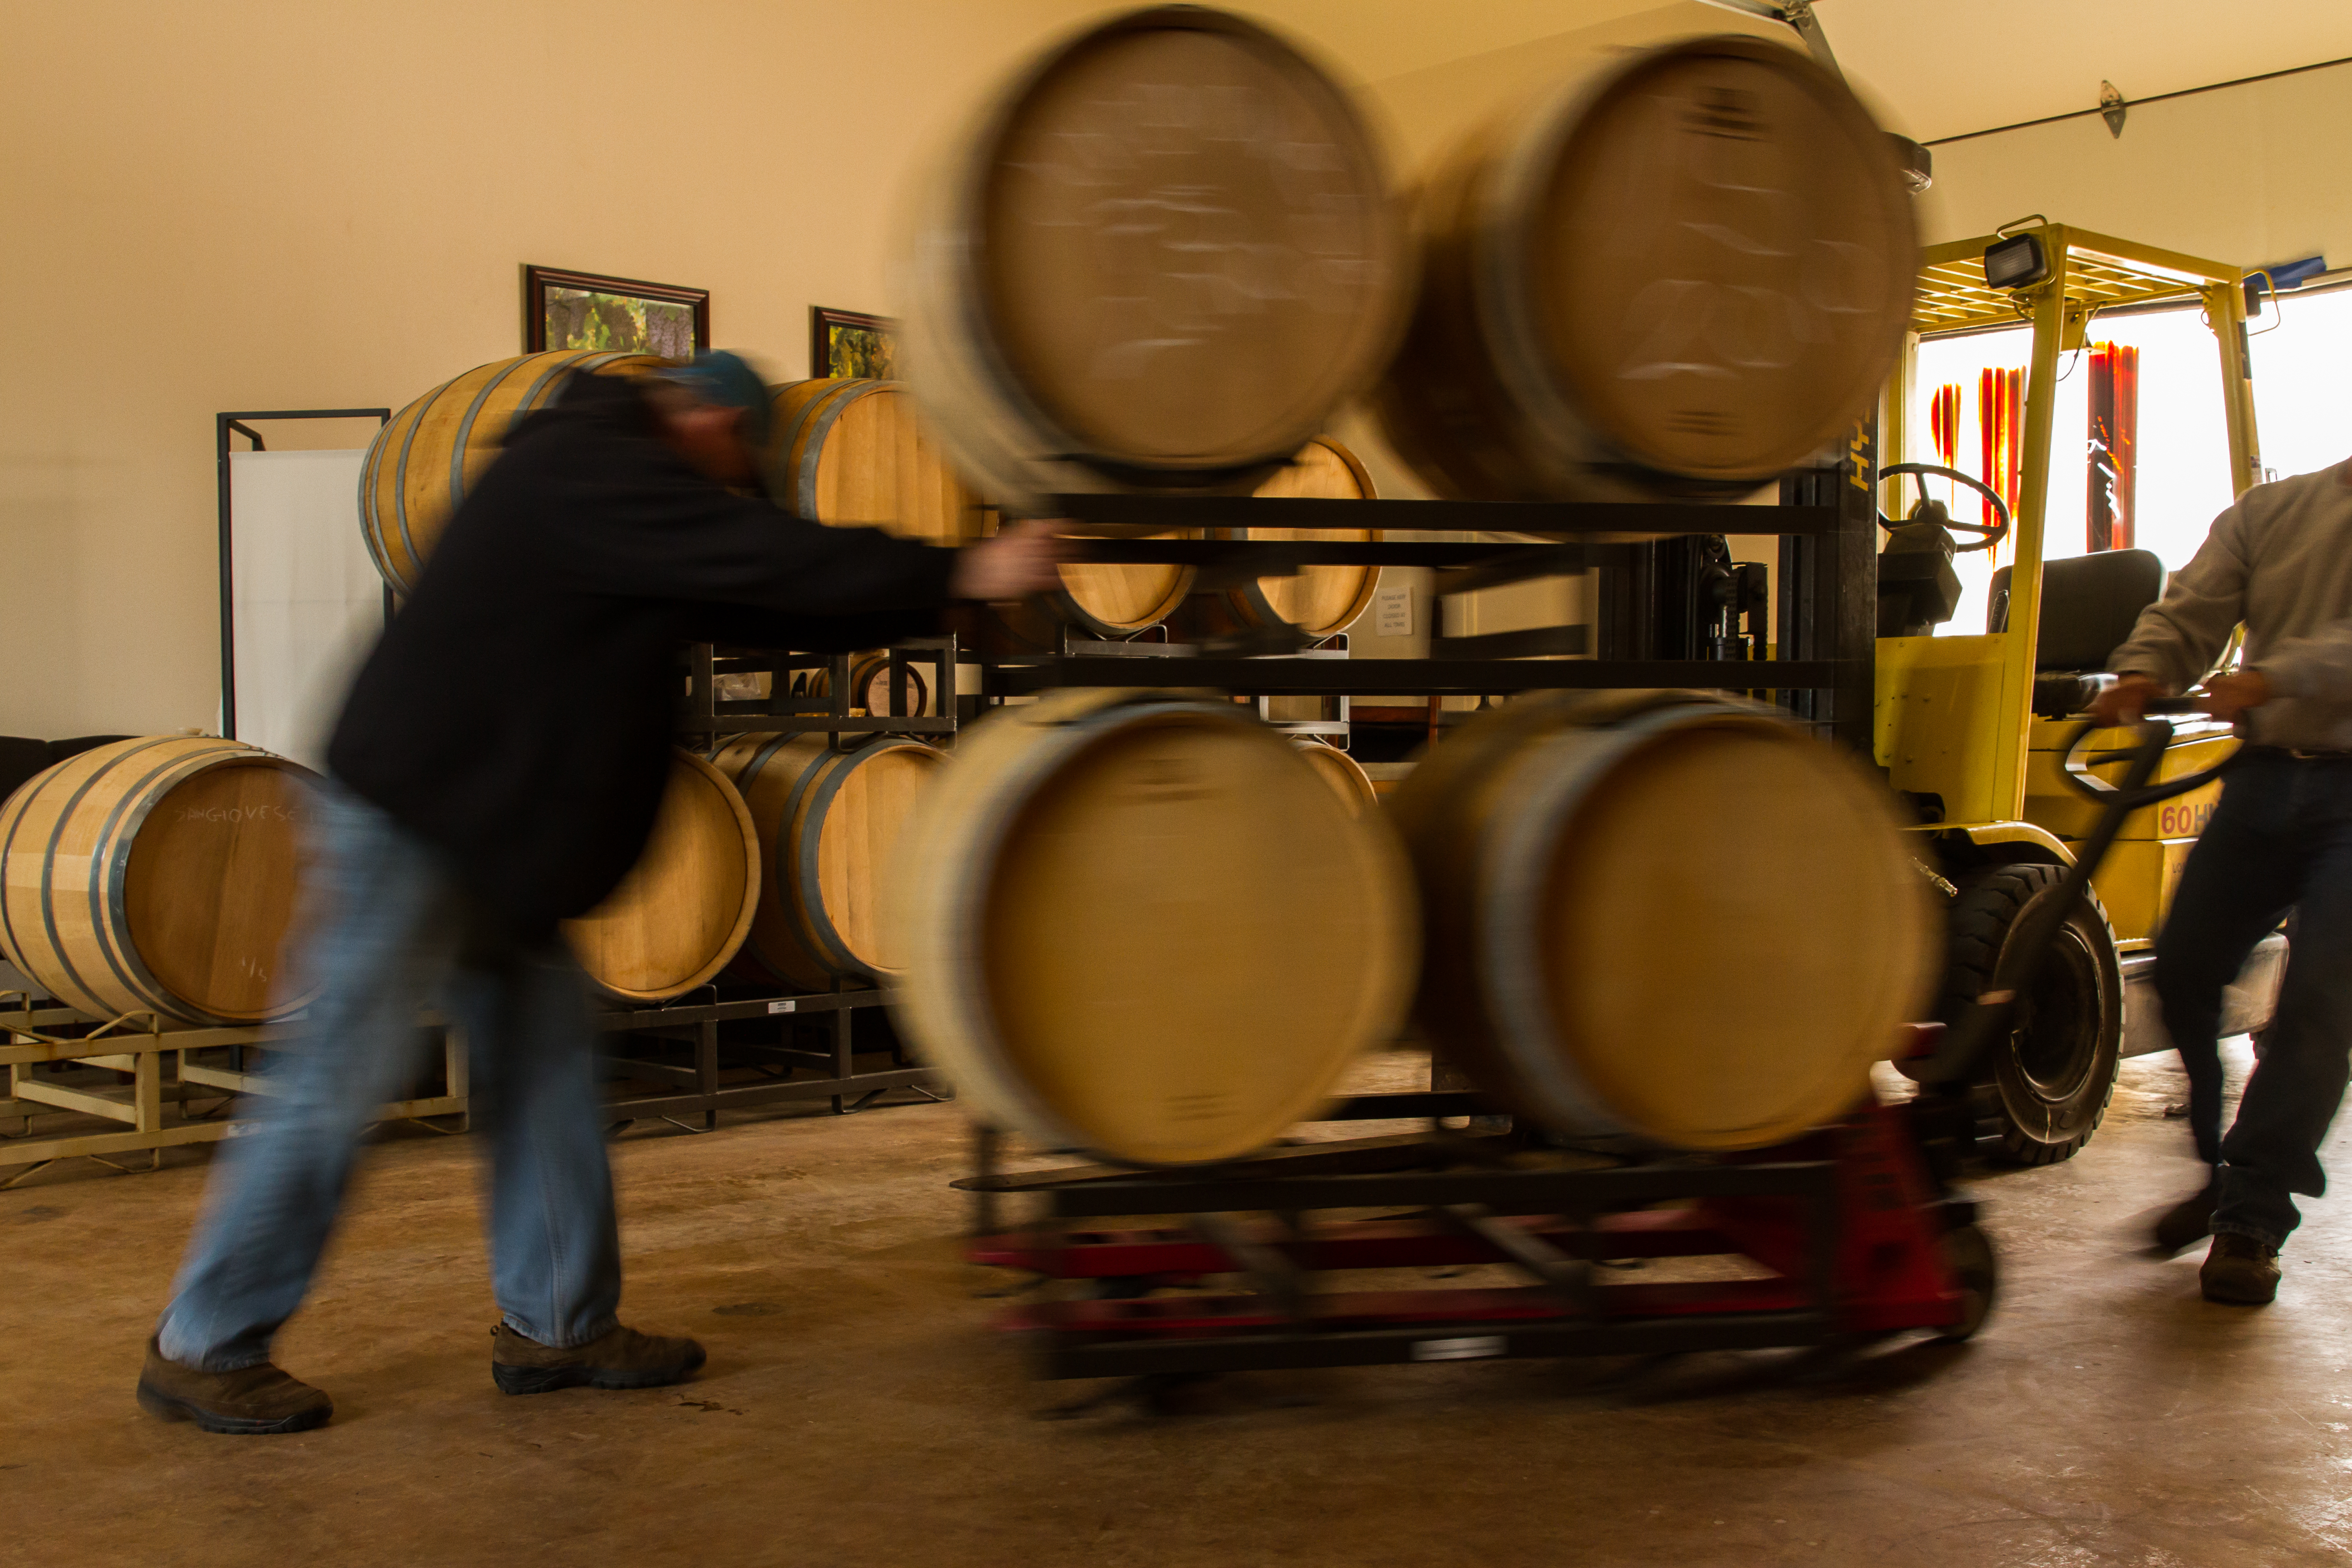 Barrels in Motion - Pic courtesy of Lash Photography